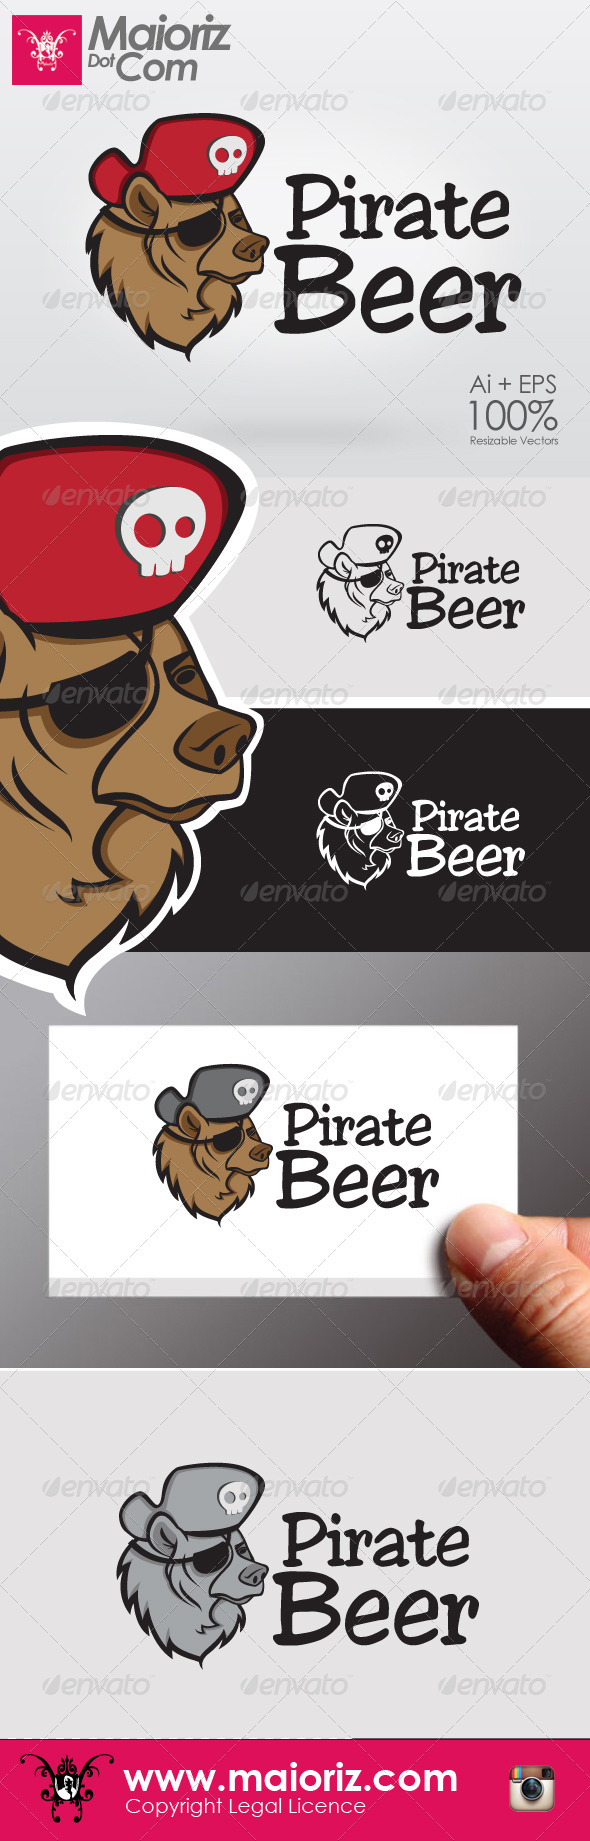 GraphicRiver Pirate Beer Logo 6422137